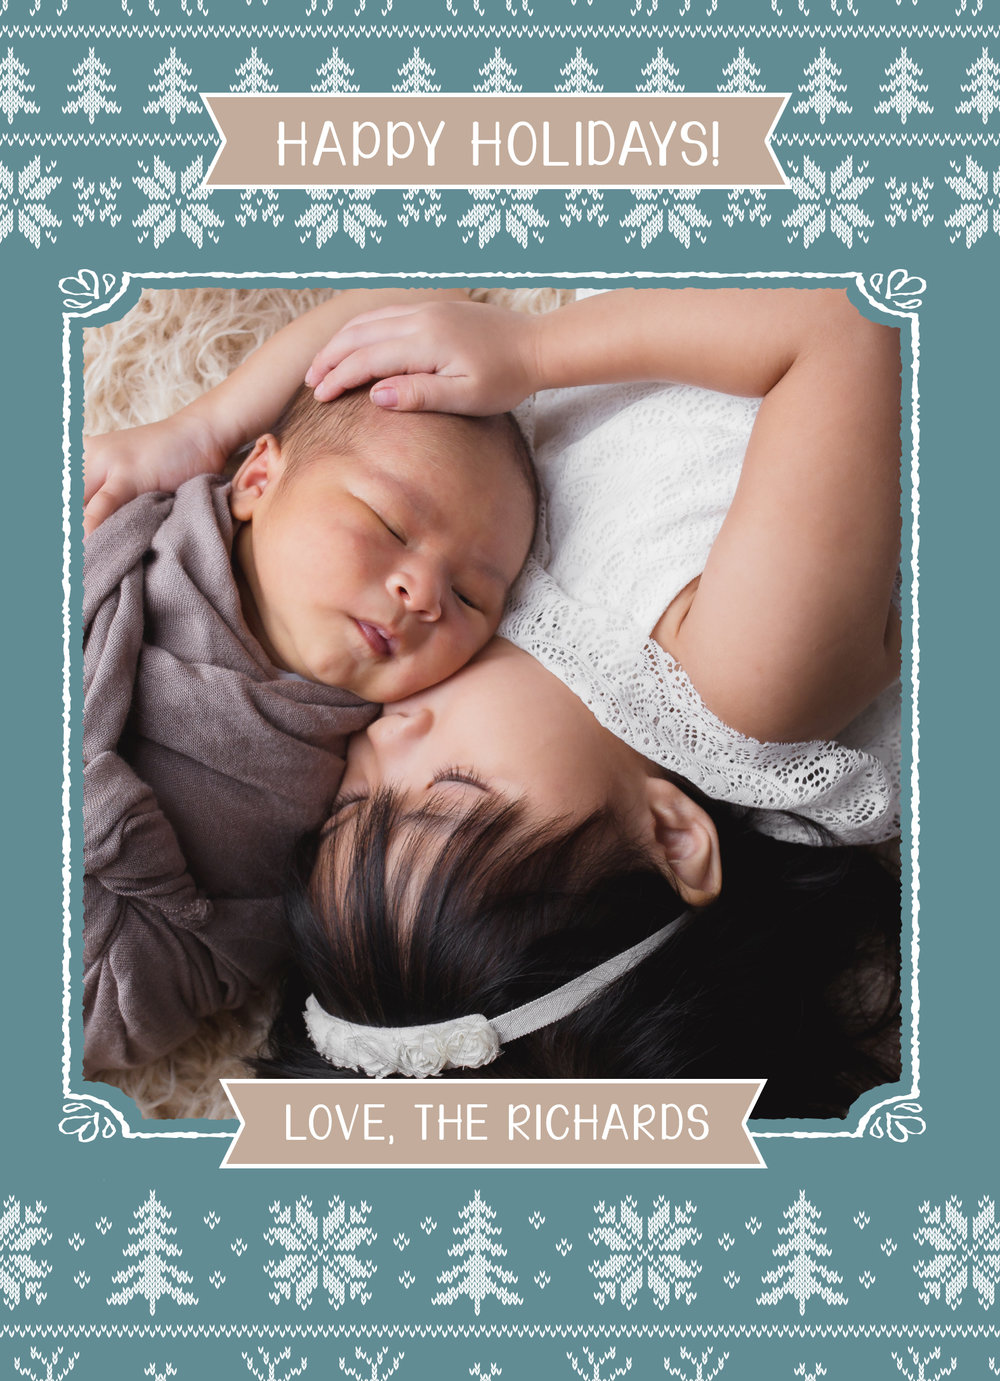 This gorgeous card makes me wish for that warm sweater! Love the sibling Portrait and the custom color banner which brings this card together